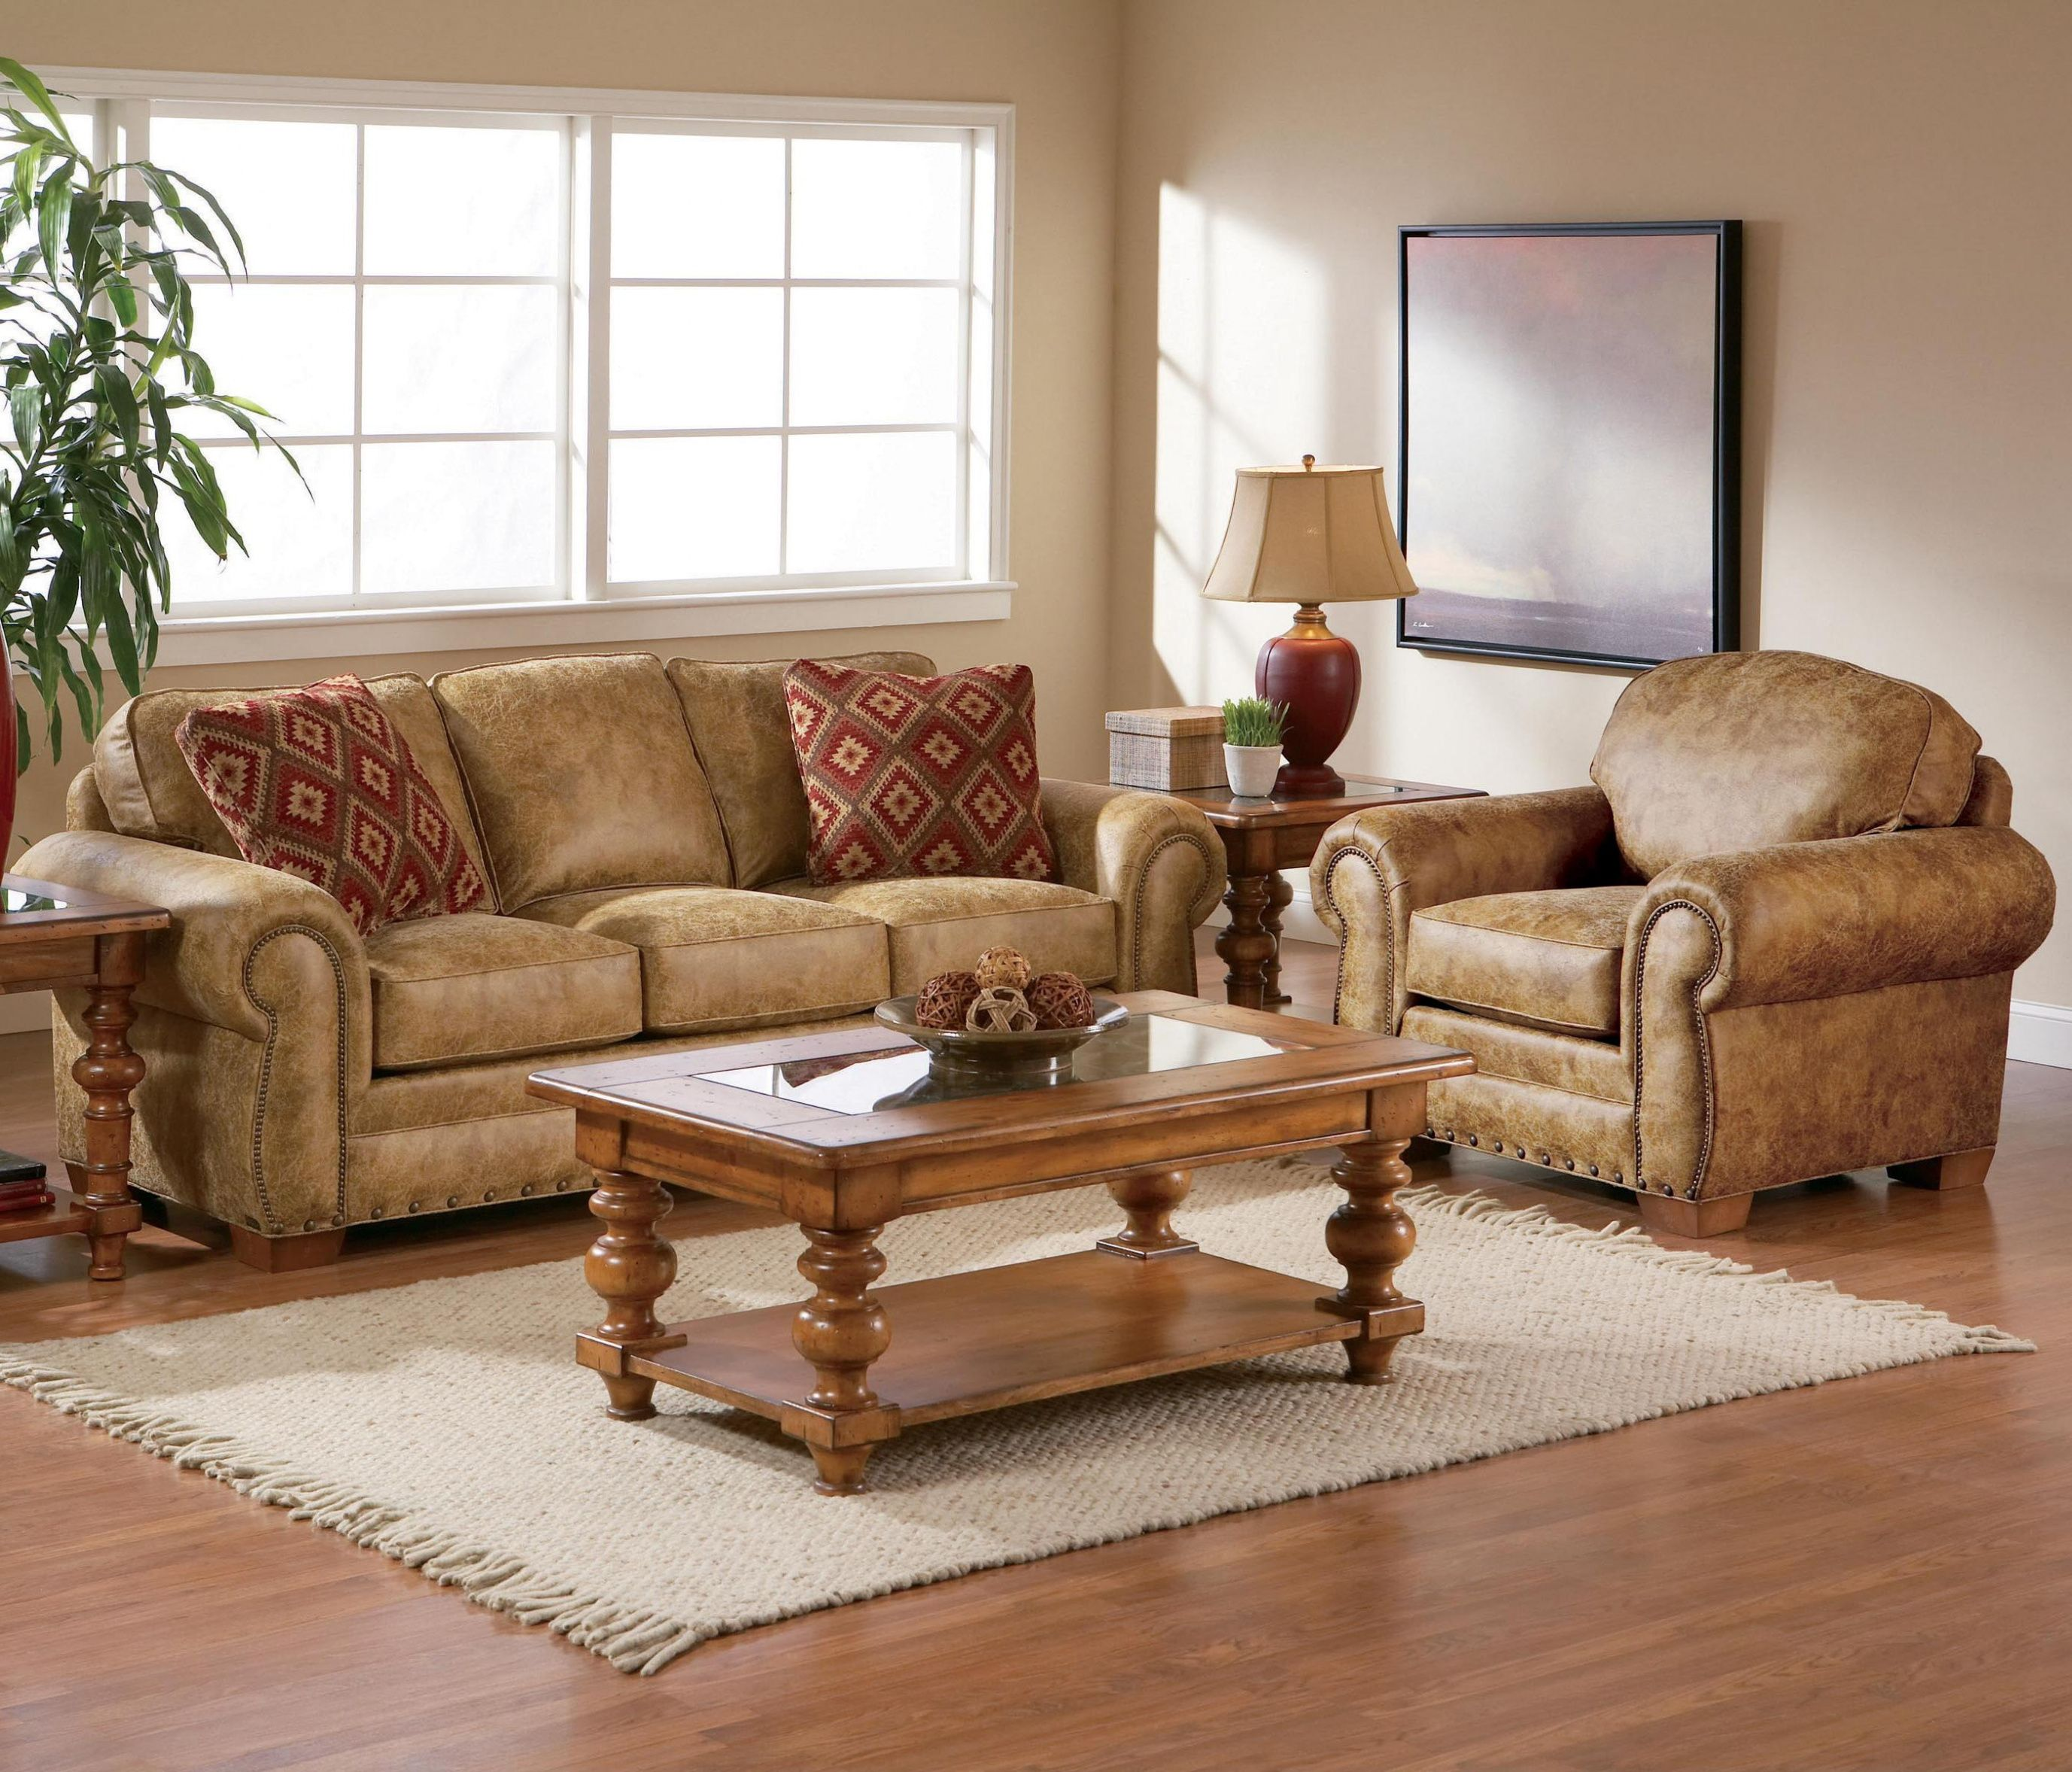 Is Broyhill Furniture Good Quality Best Master Furniture Check